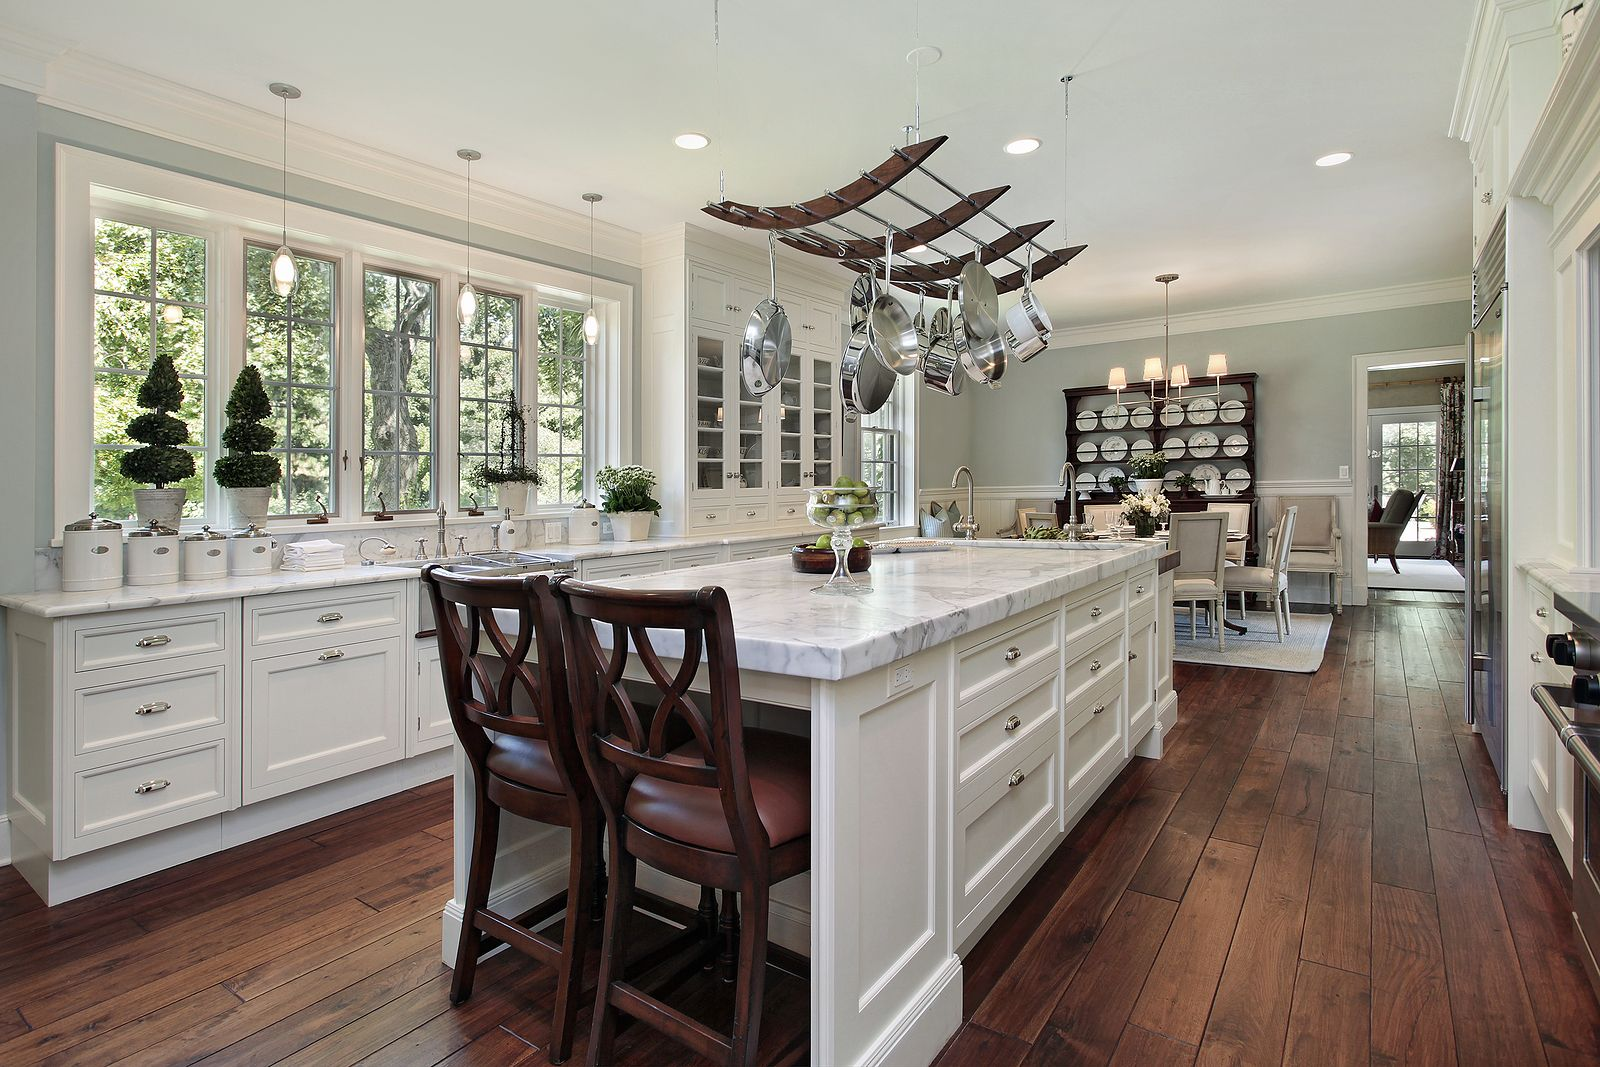 Wood Floors In Kitchens Dark Floors In Beach Houses Kitchen Decorating Design Ideas With